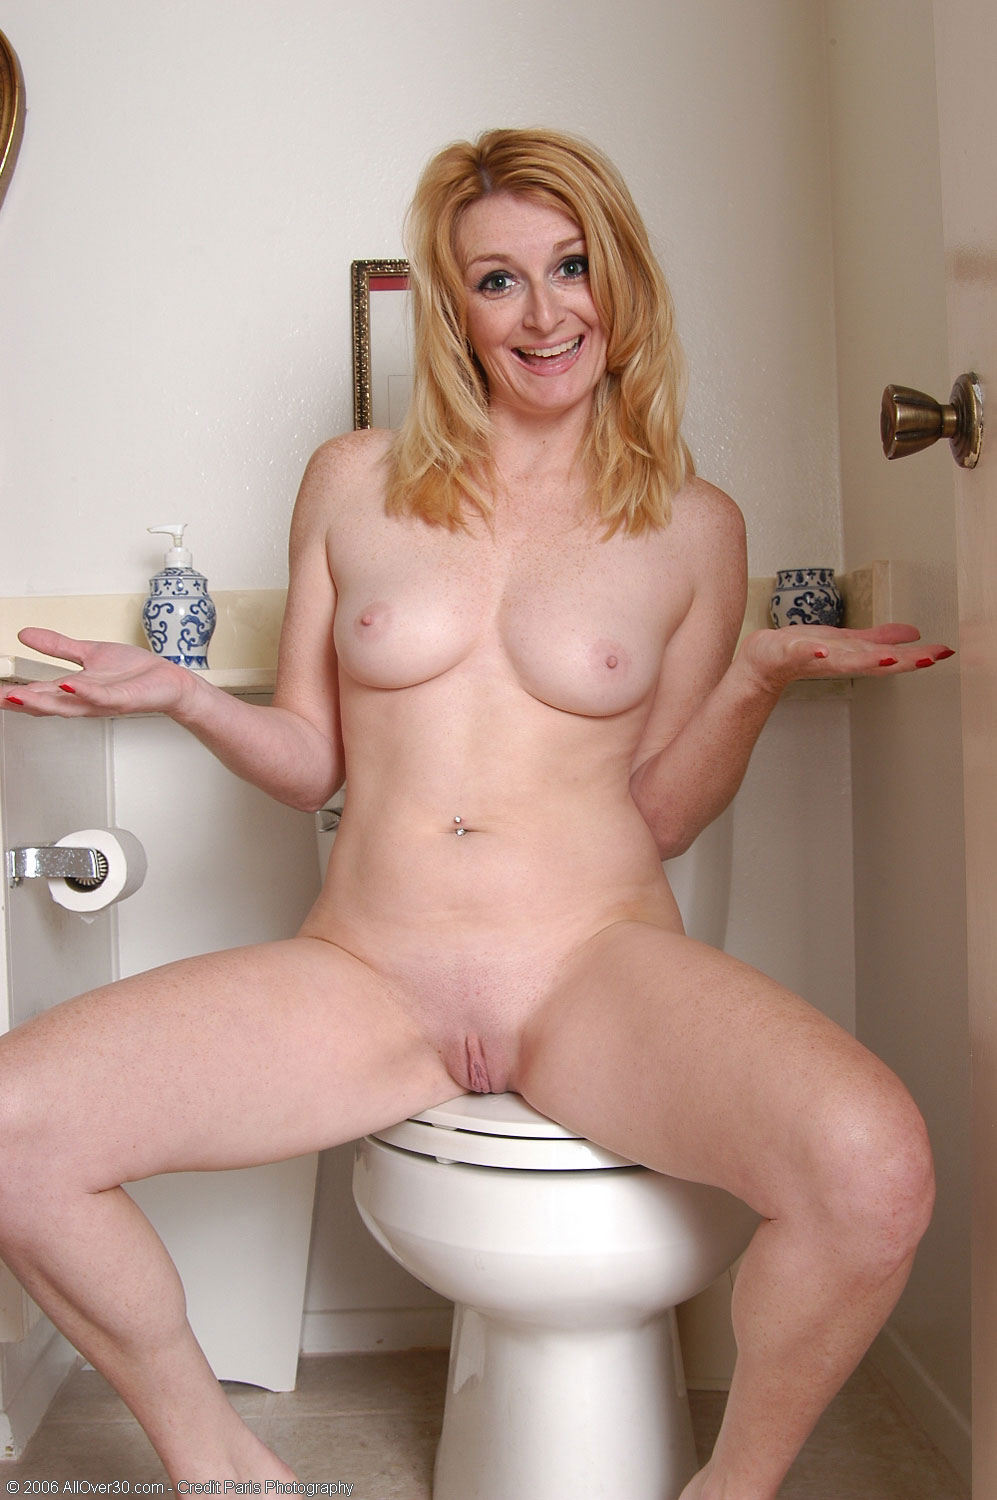 very very clean nudesexy xxx girl photo